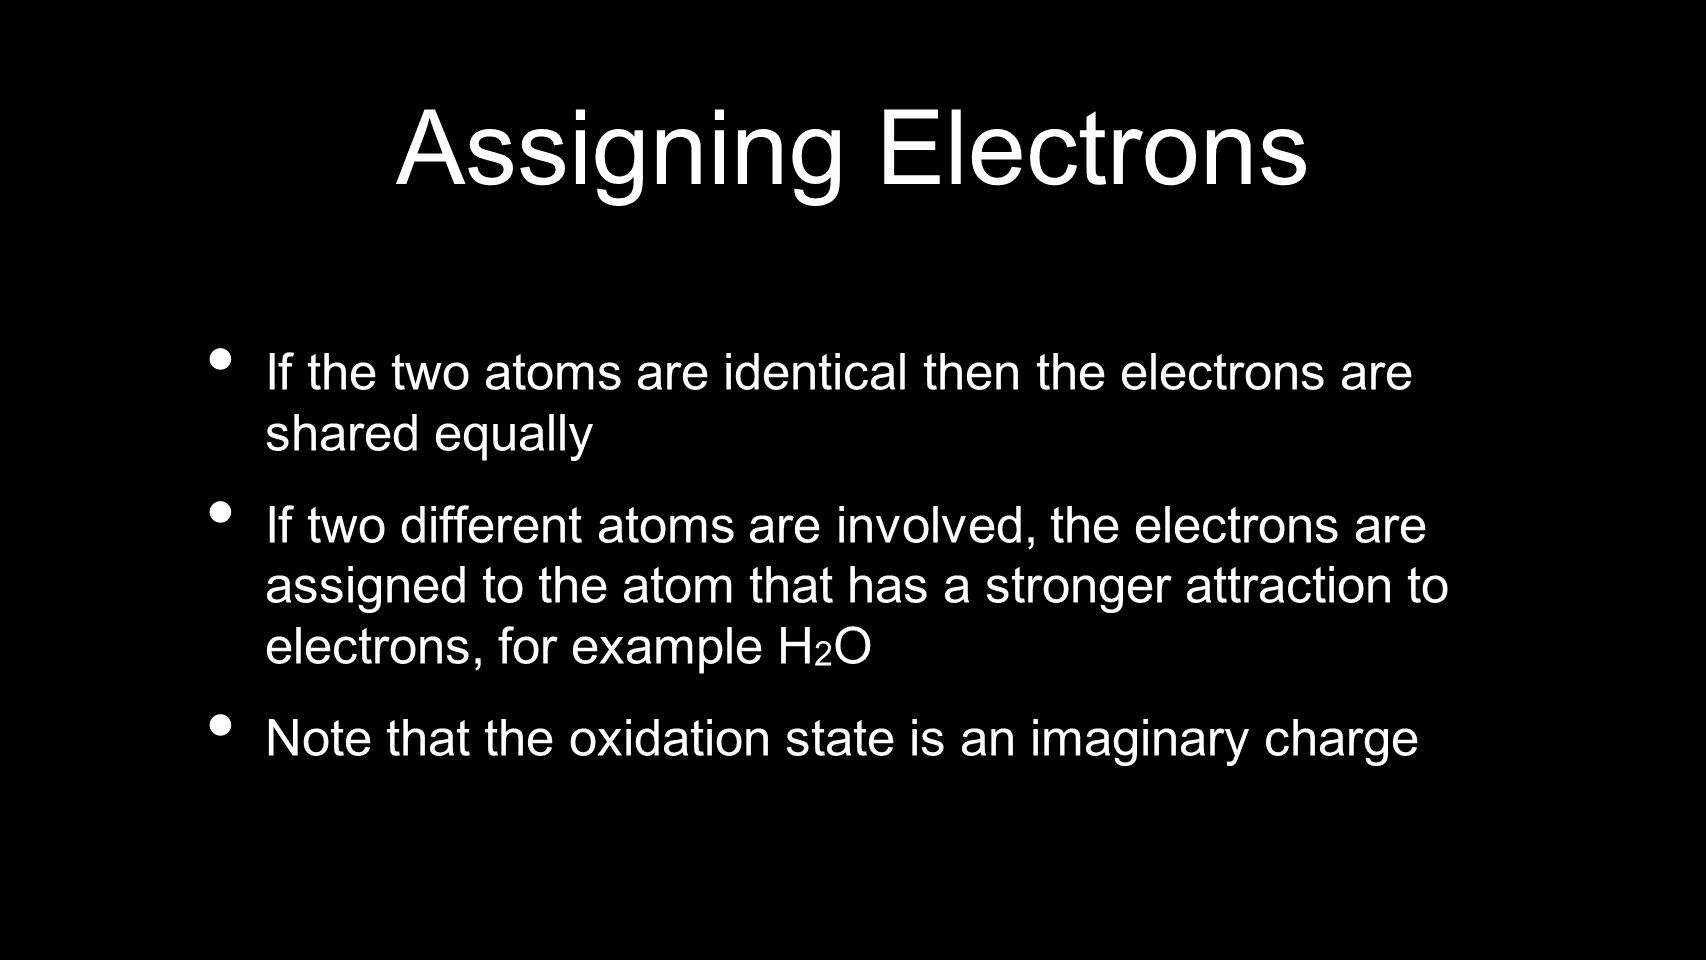 Assigning Electrons If the two atoms are identical then the electrons are shared equally If two different atoms are involved, the electrons are assign